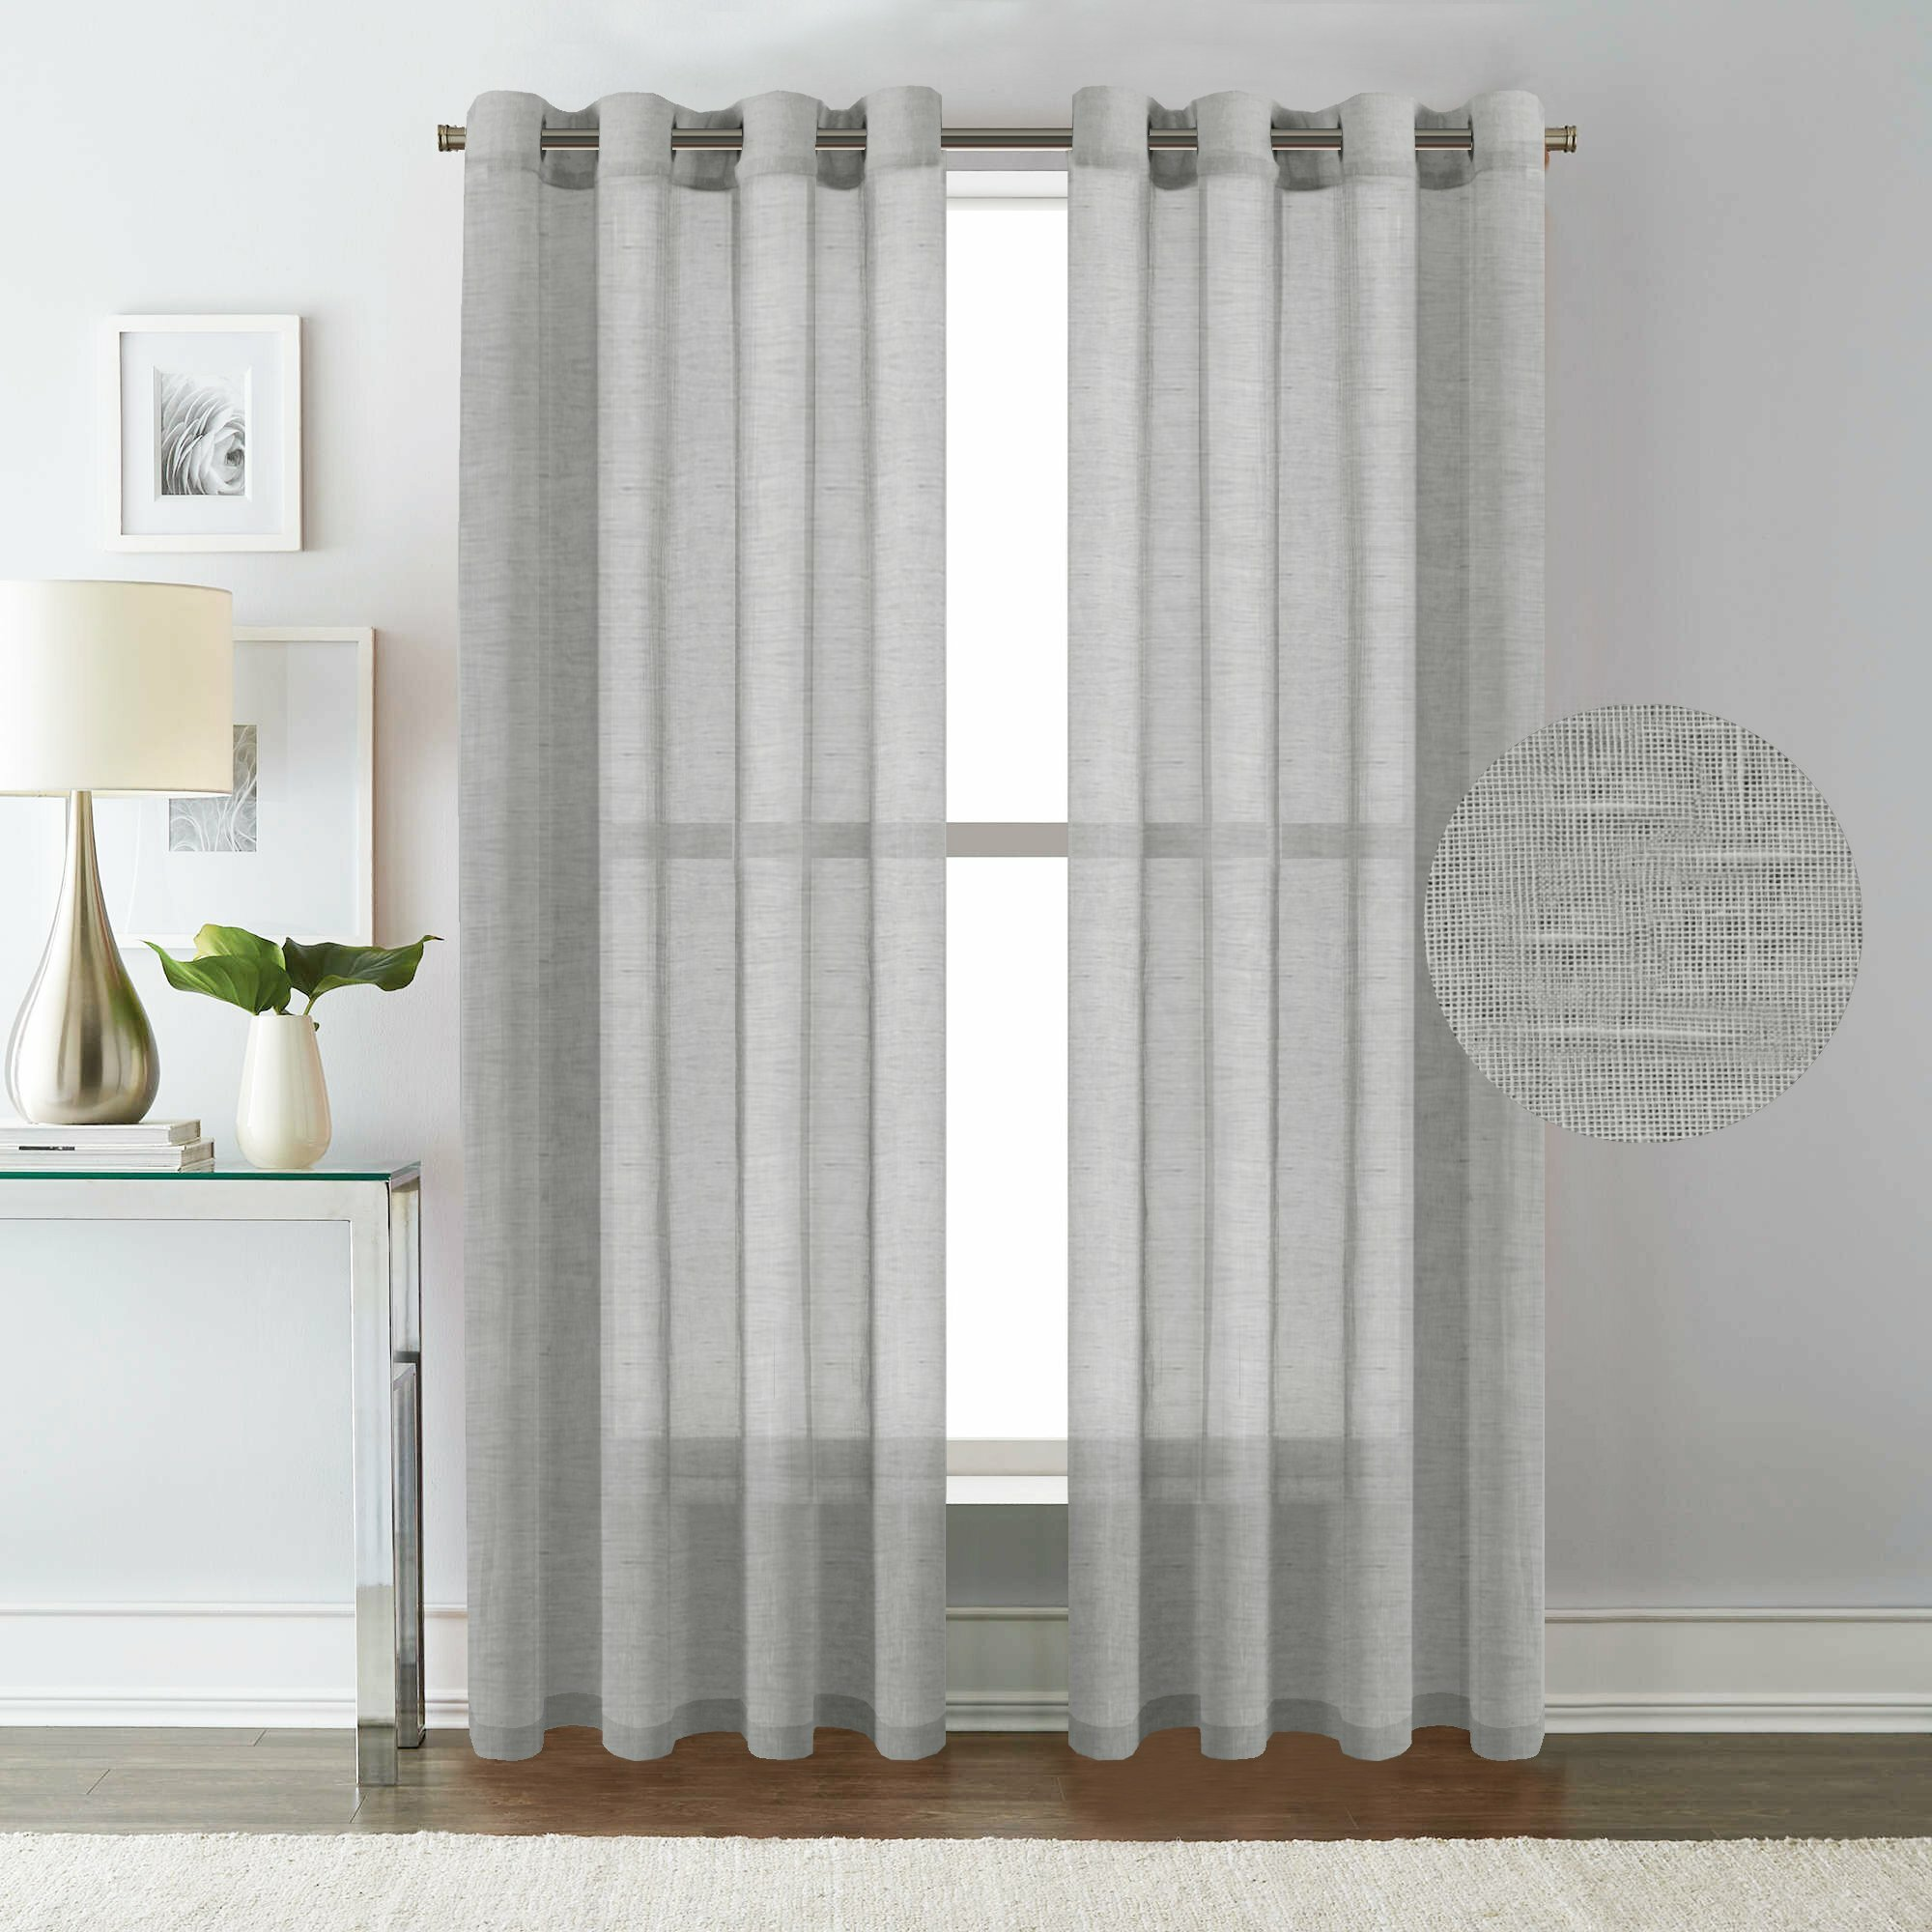 curtains blackout collection fullview fashions linen room elrene darkening braiden products home window